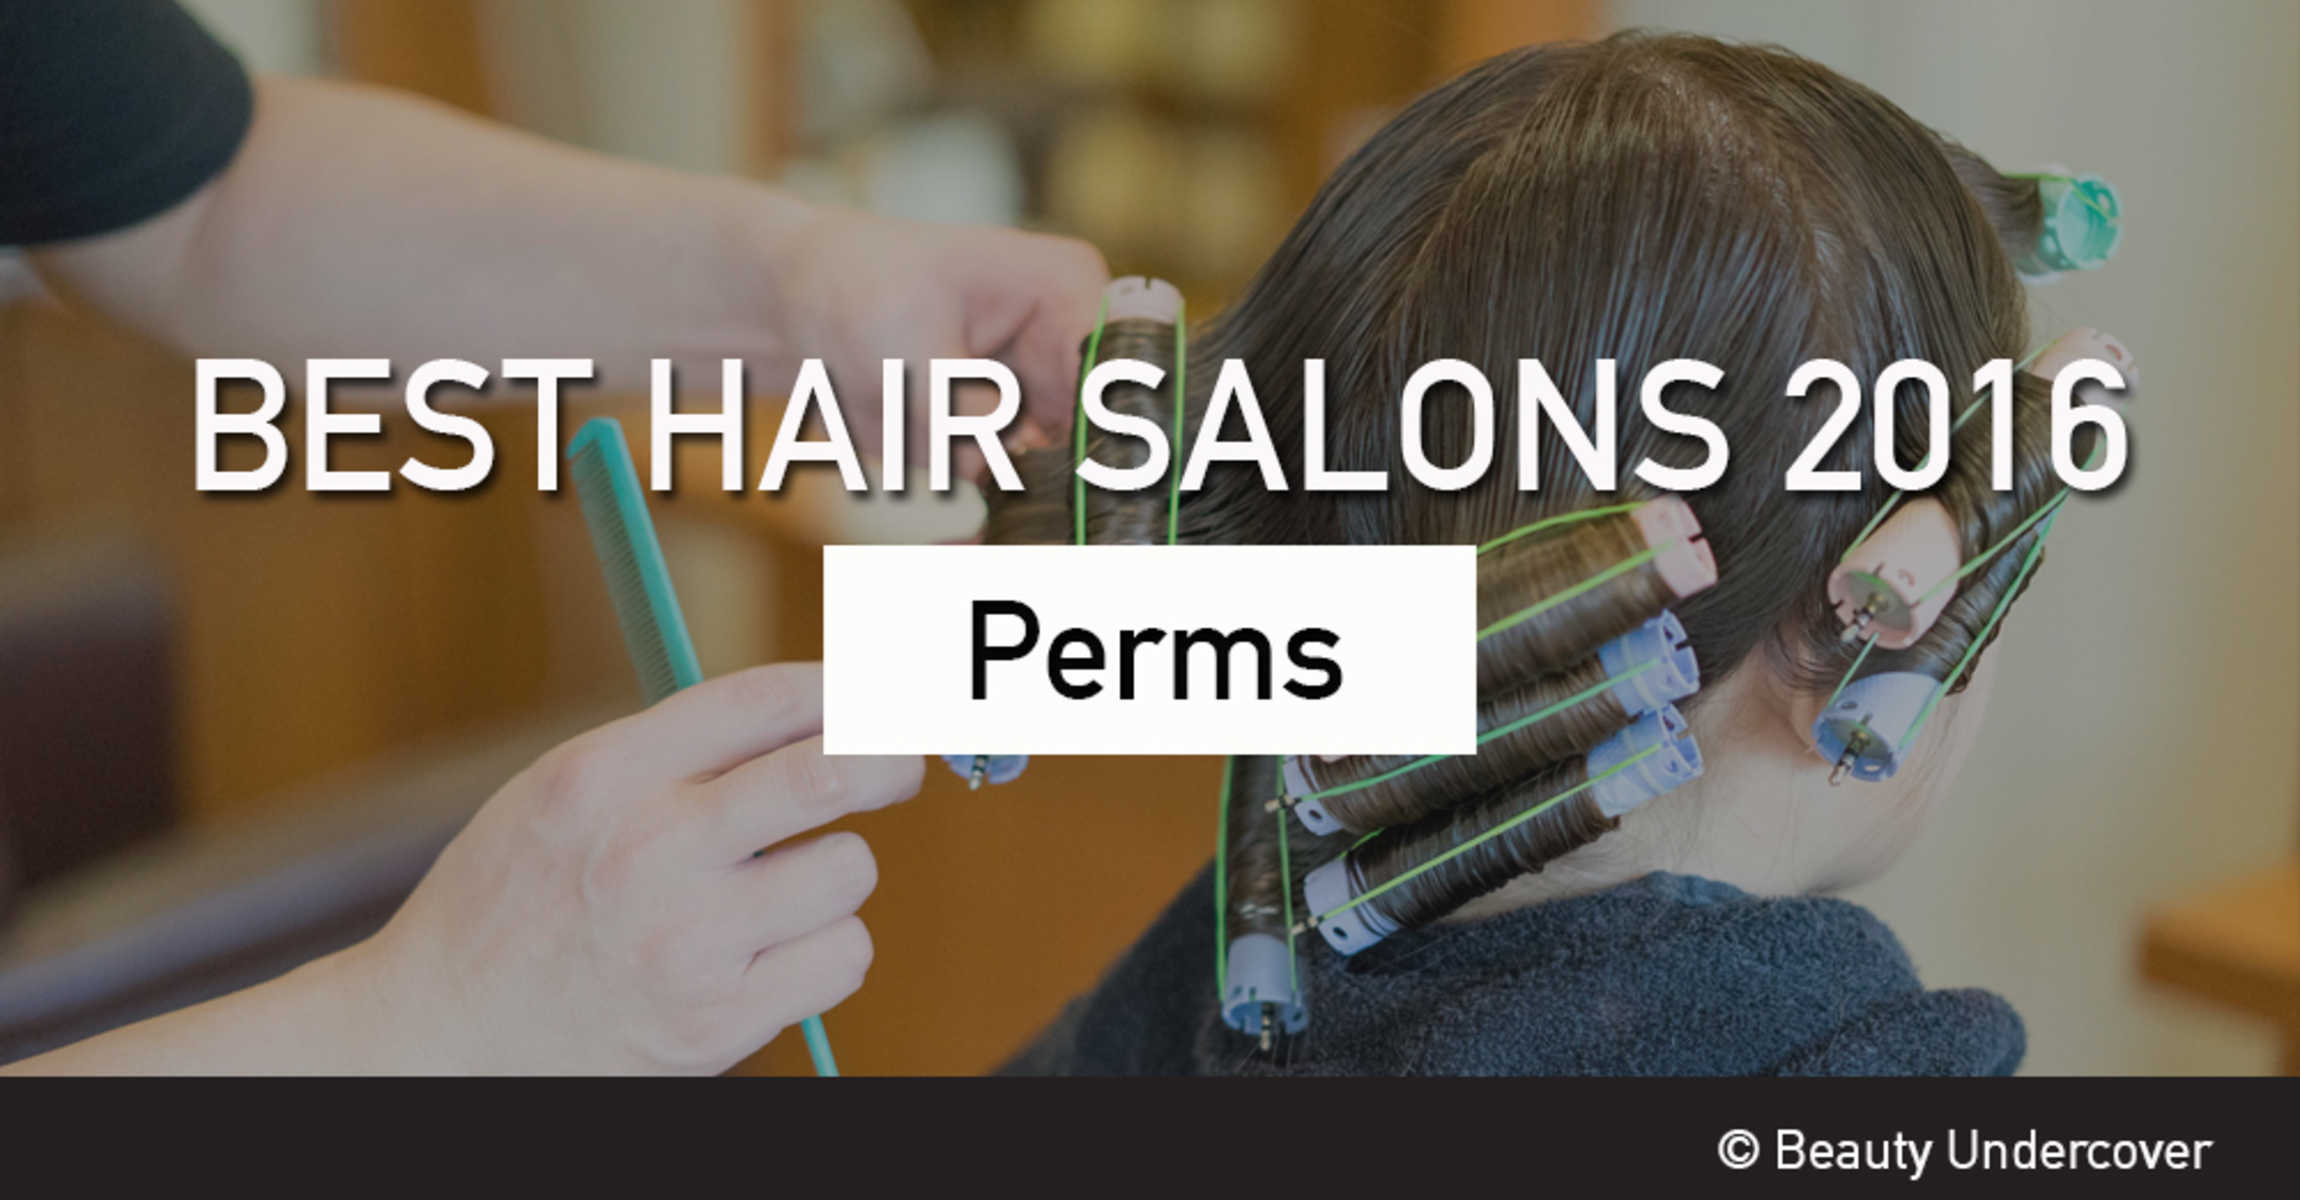 Hair Salon Perm : Best Hair Salons to Perm Your Hair in Singapore 2016